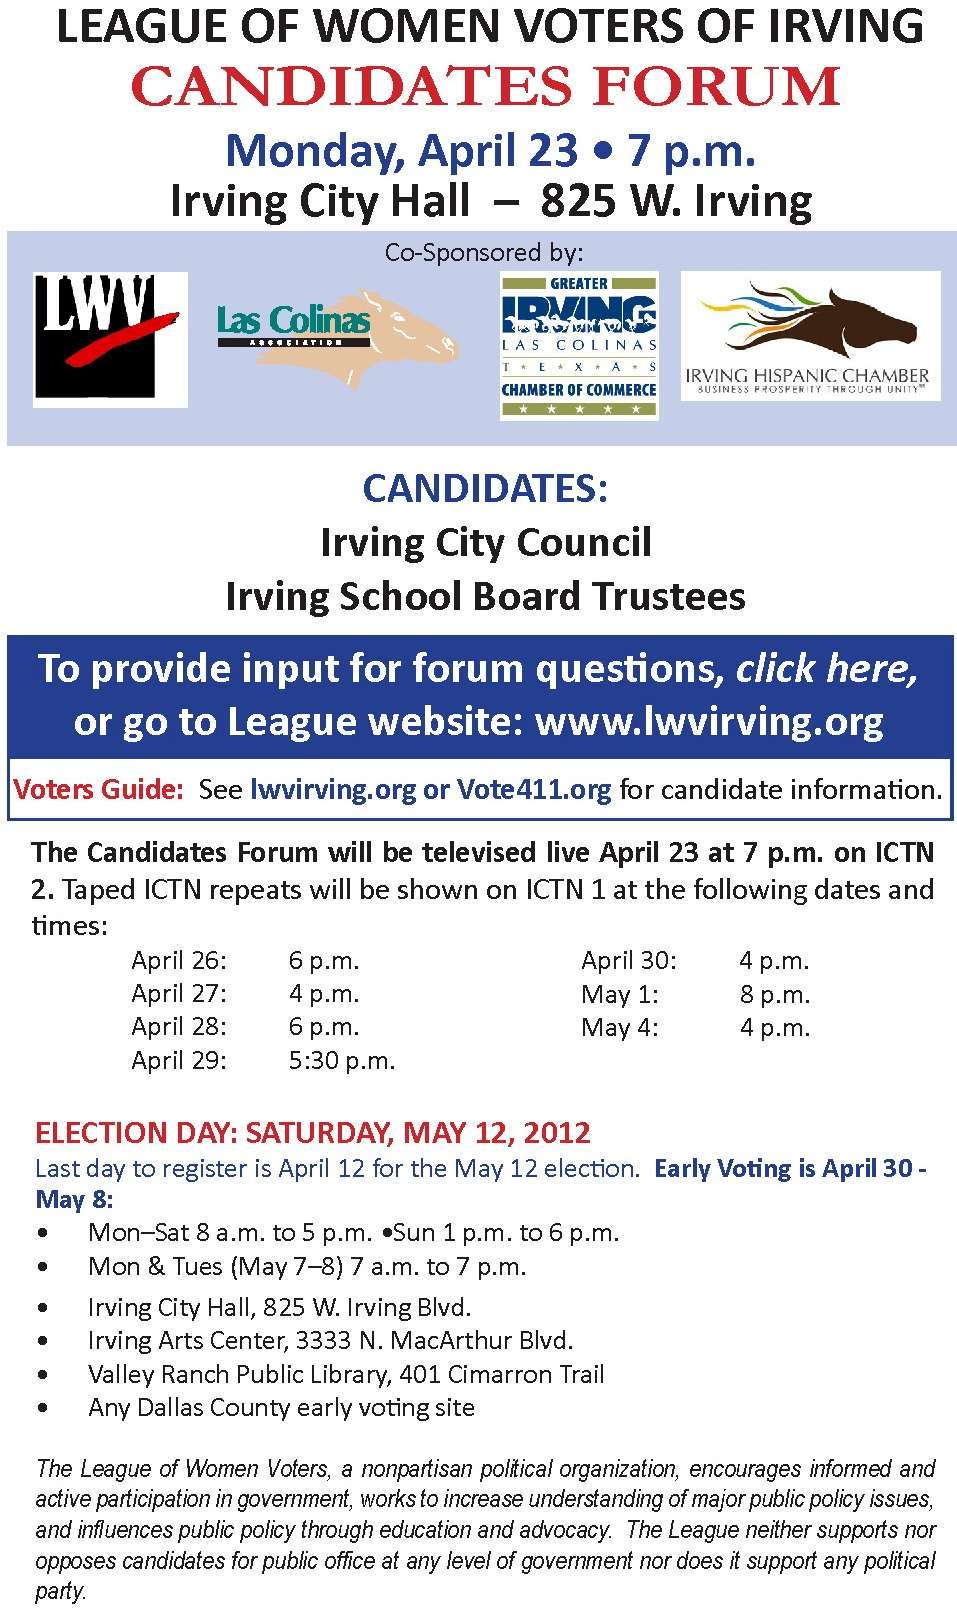 LWV candidates forum flyer 2012